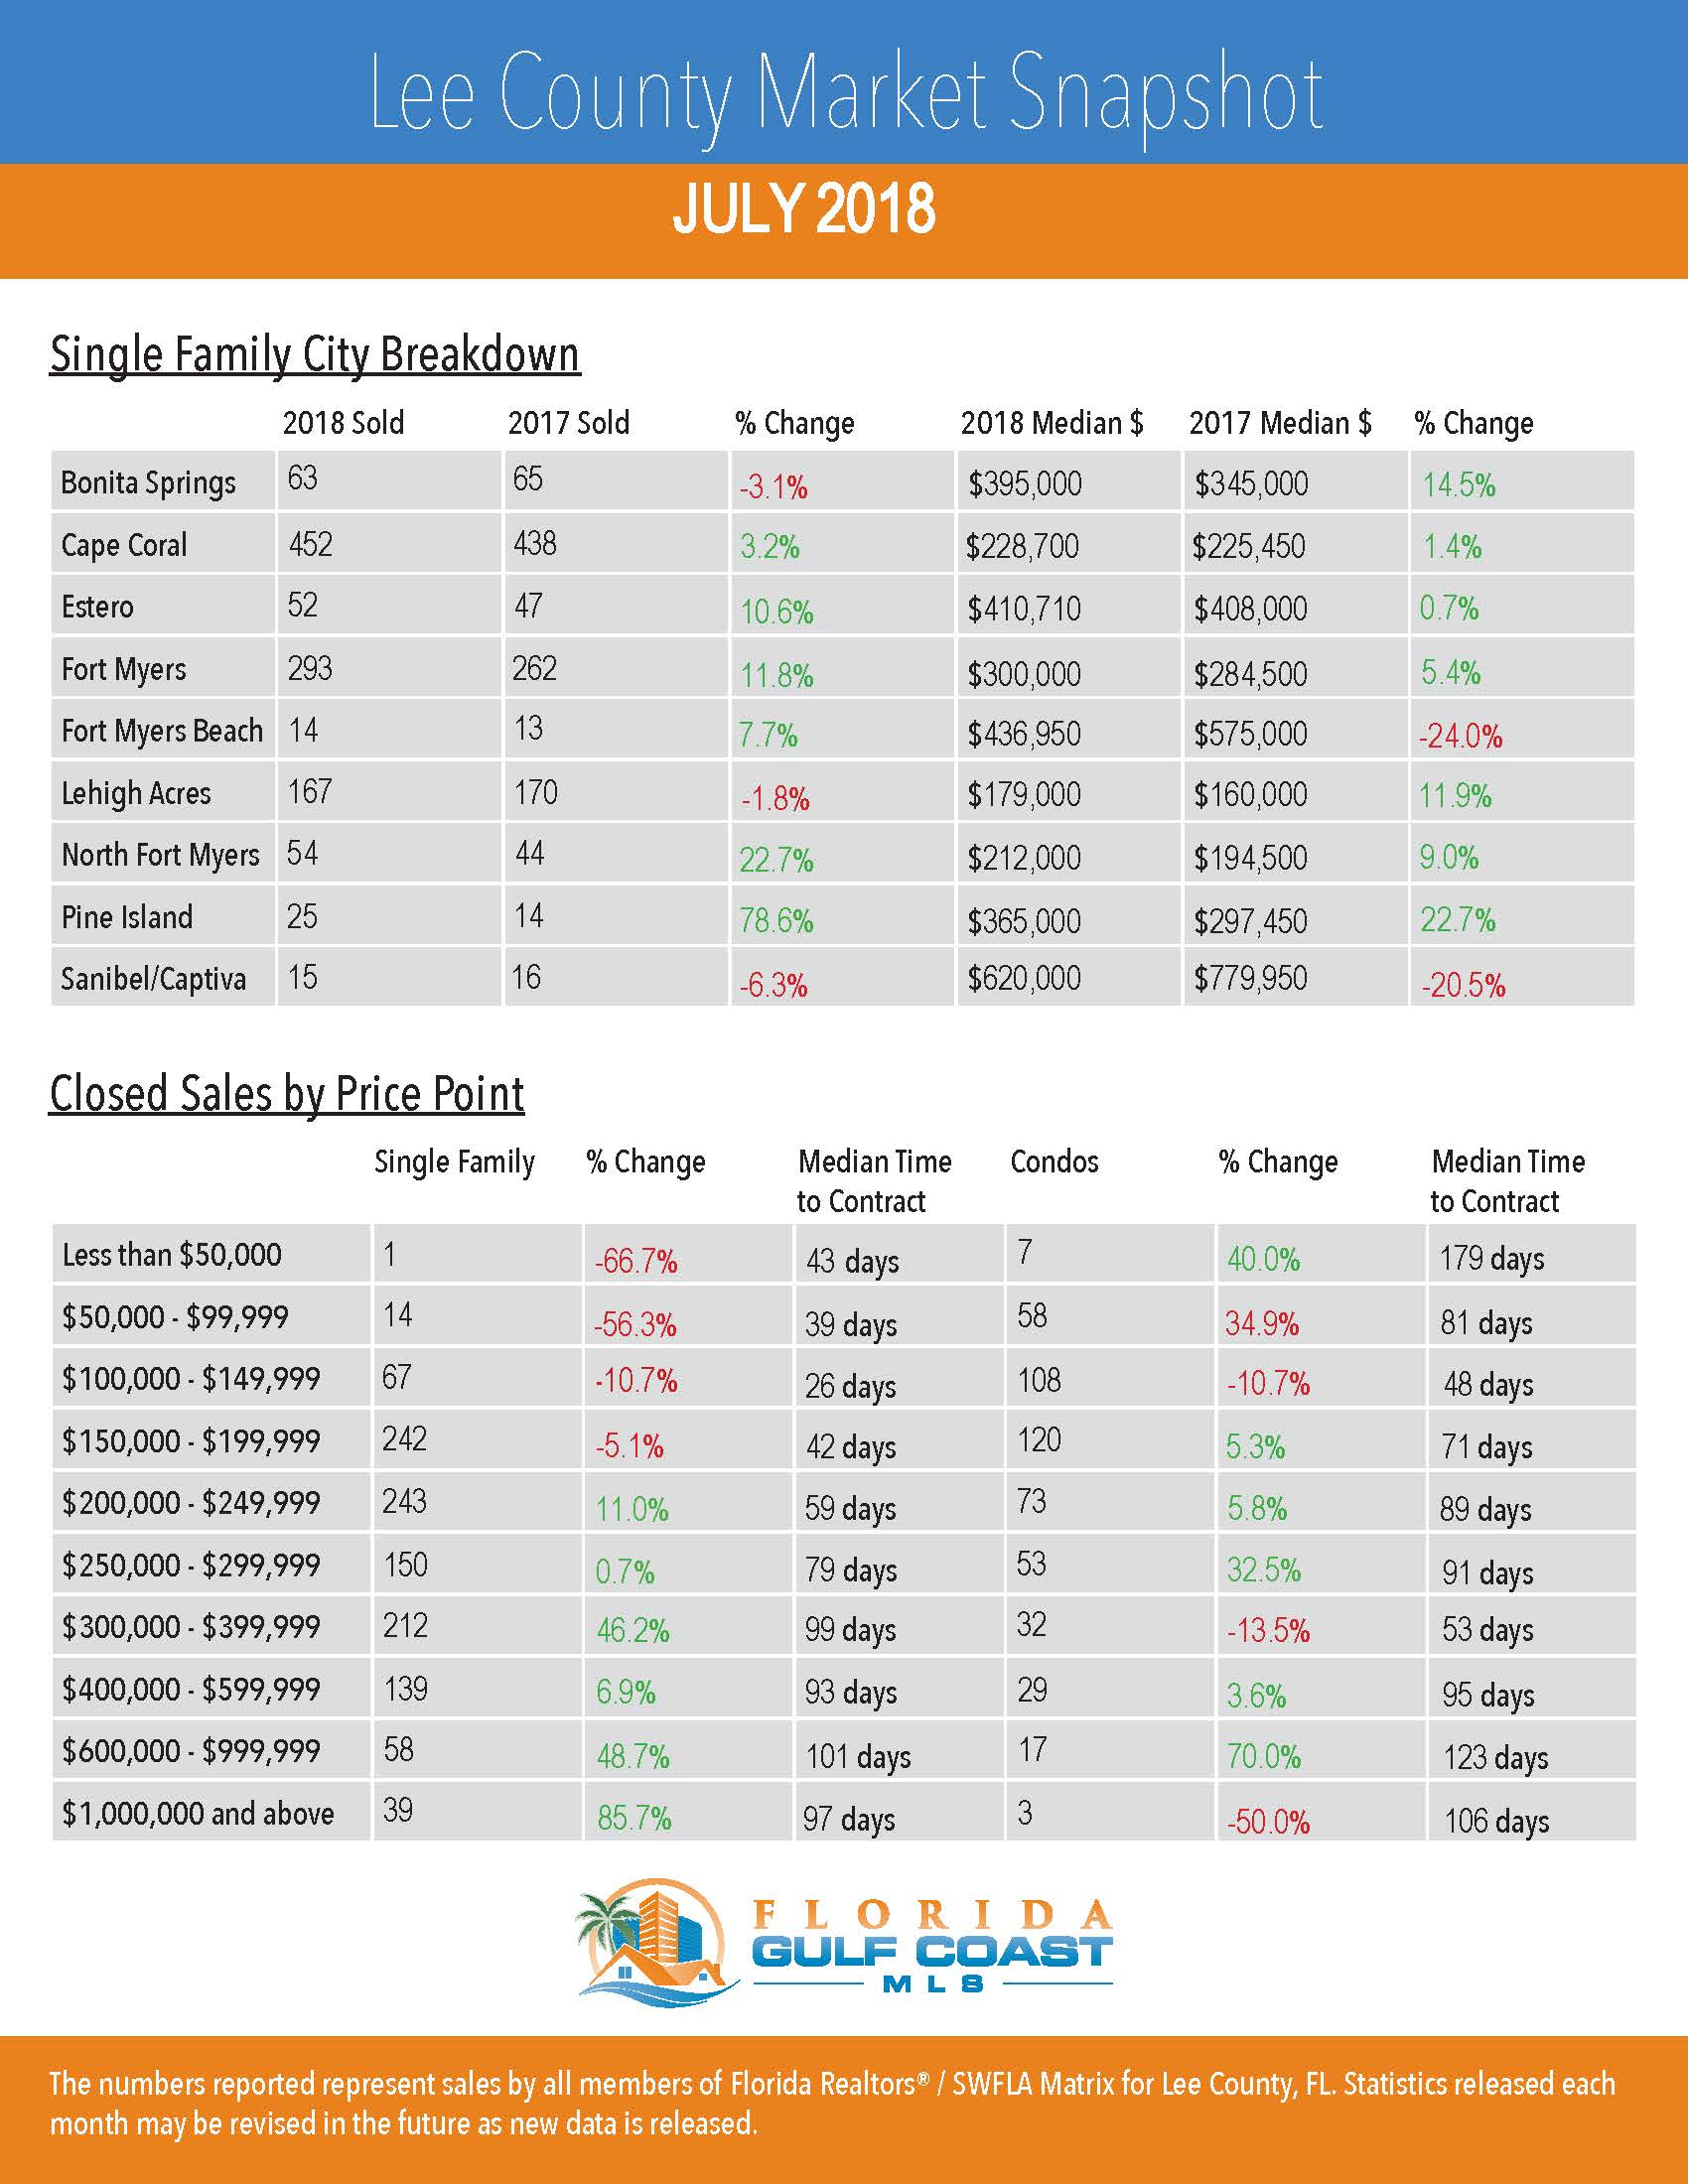 Lee County Market Snapshot July 2018 - See Real Estate Market Reports Here!